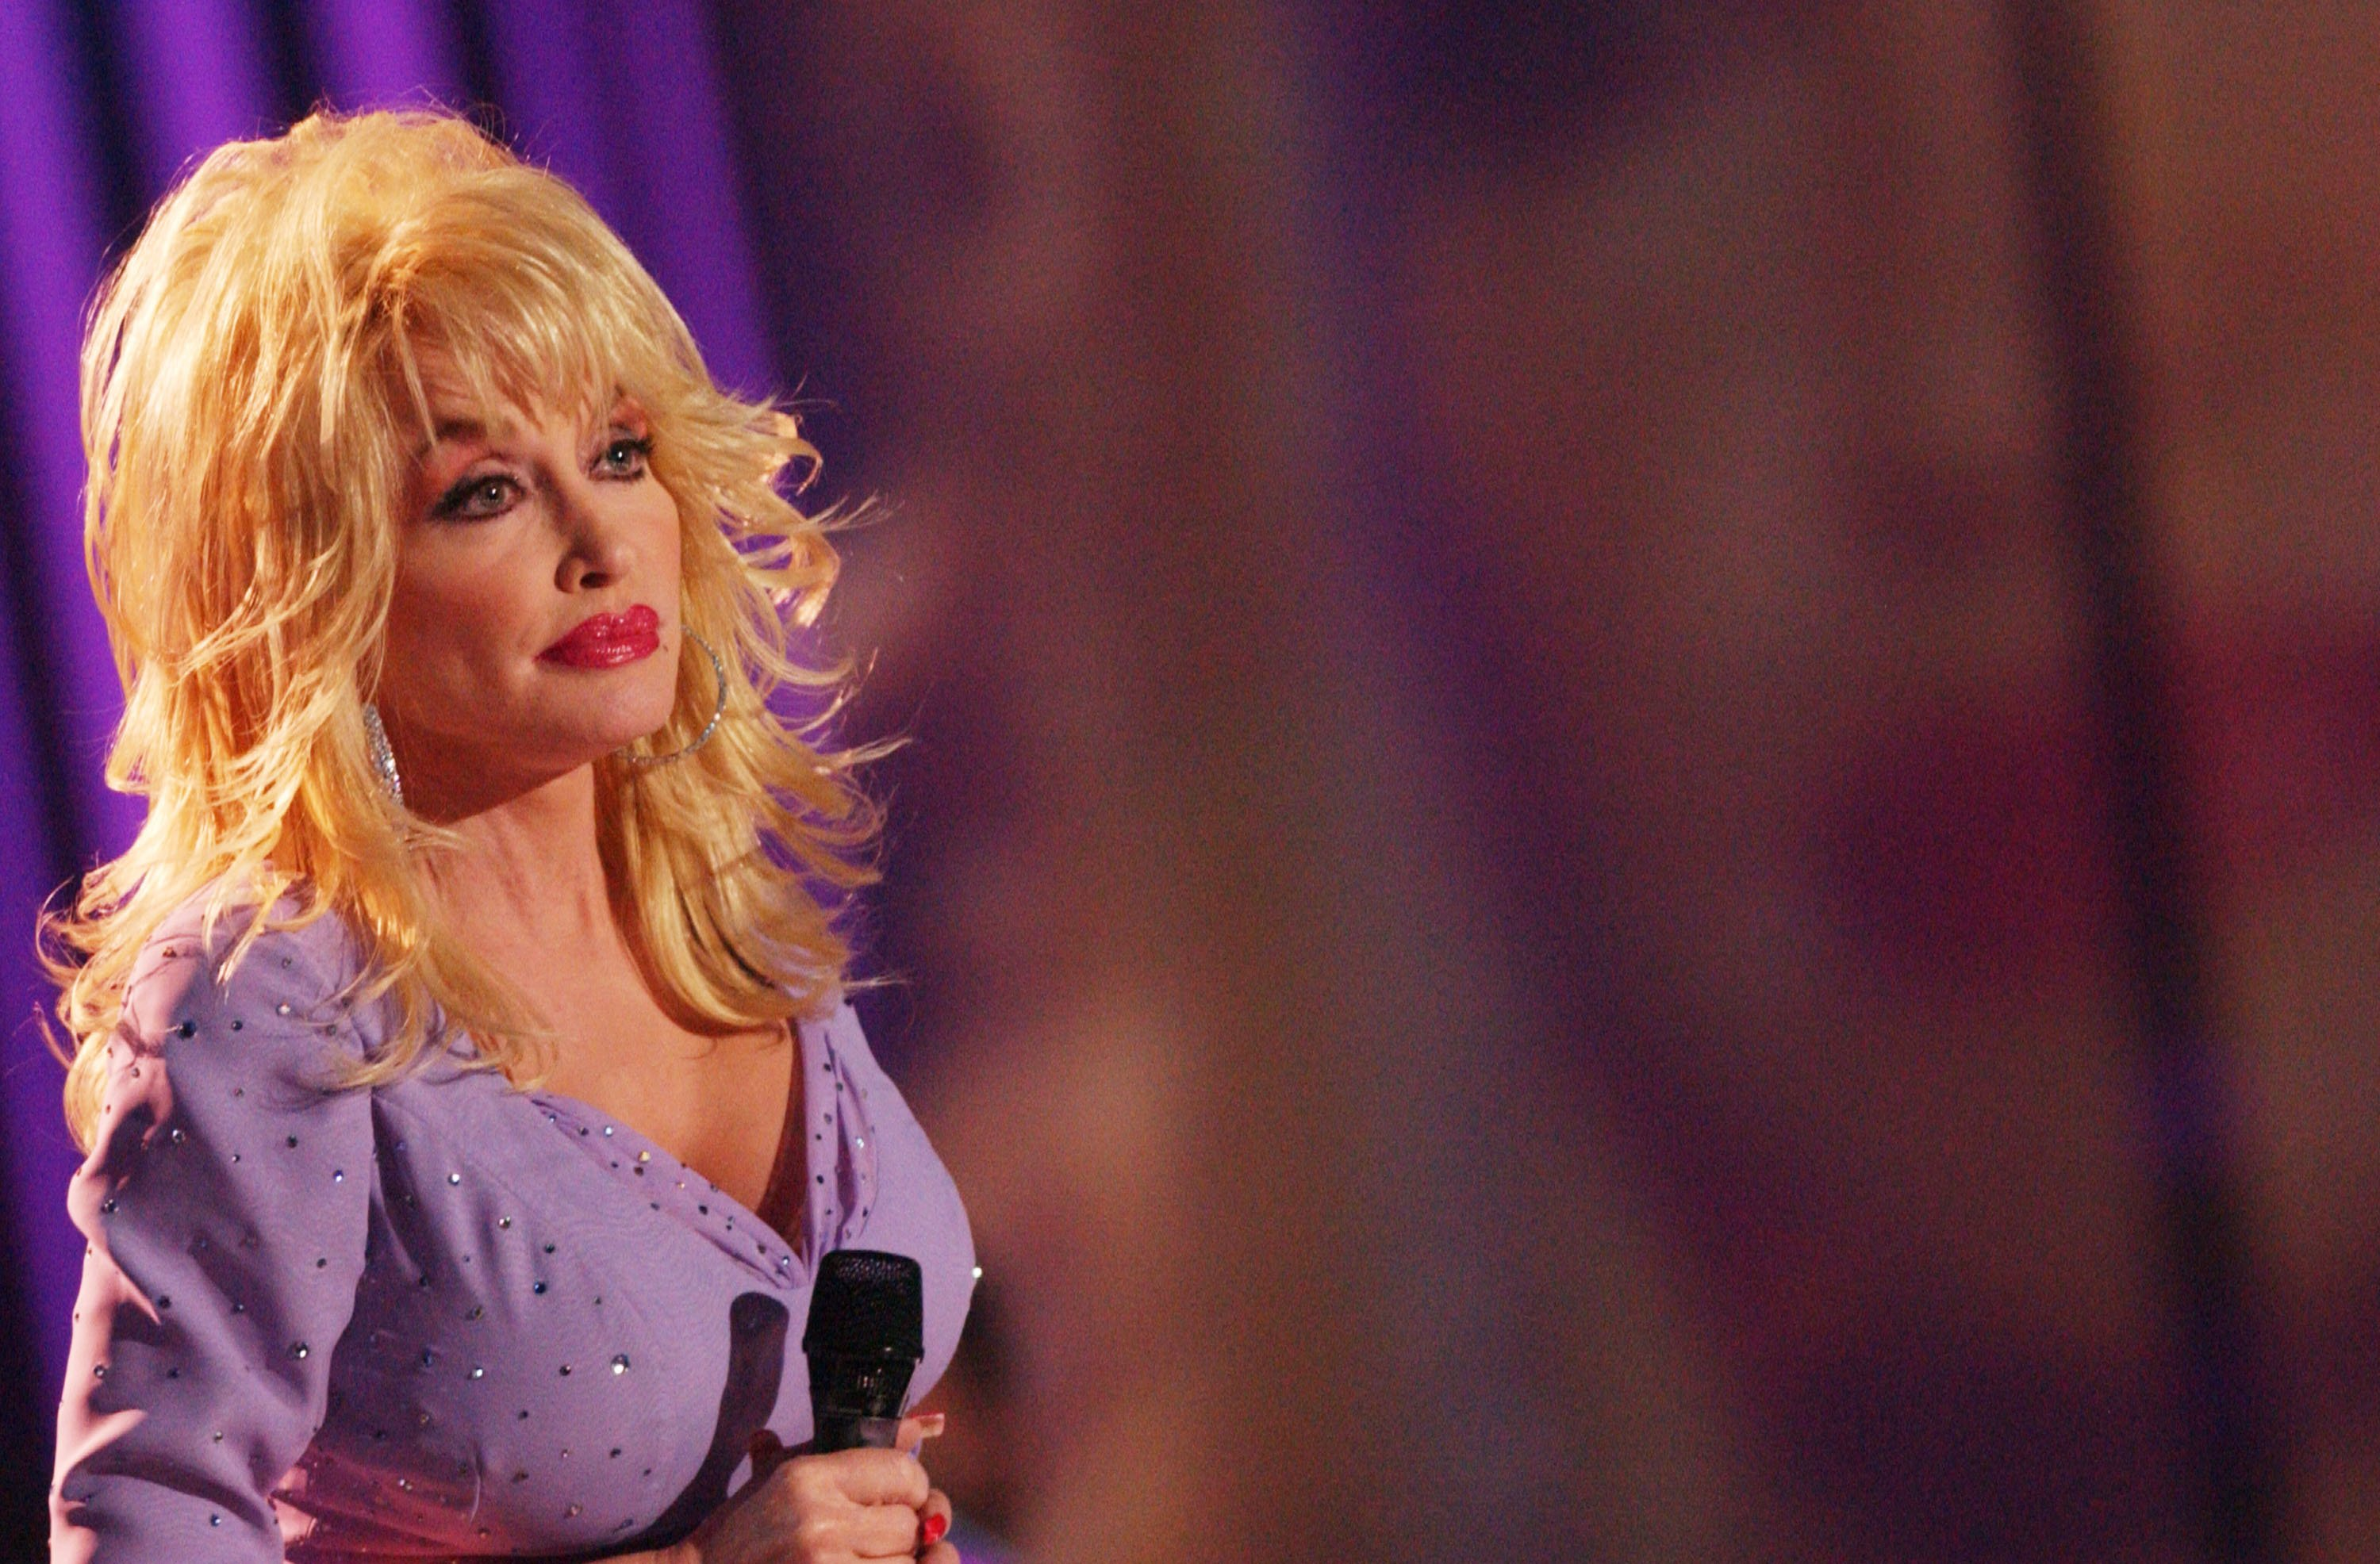 Dolly Parton on CMT 100 GREATEST LOVE SONGS, debuting on Sunday, June 13, 2004 | Photo: Getty Images